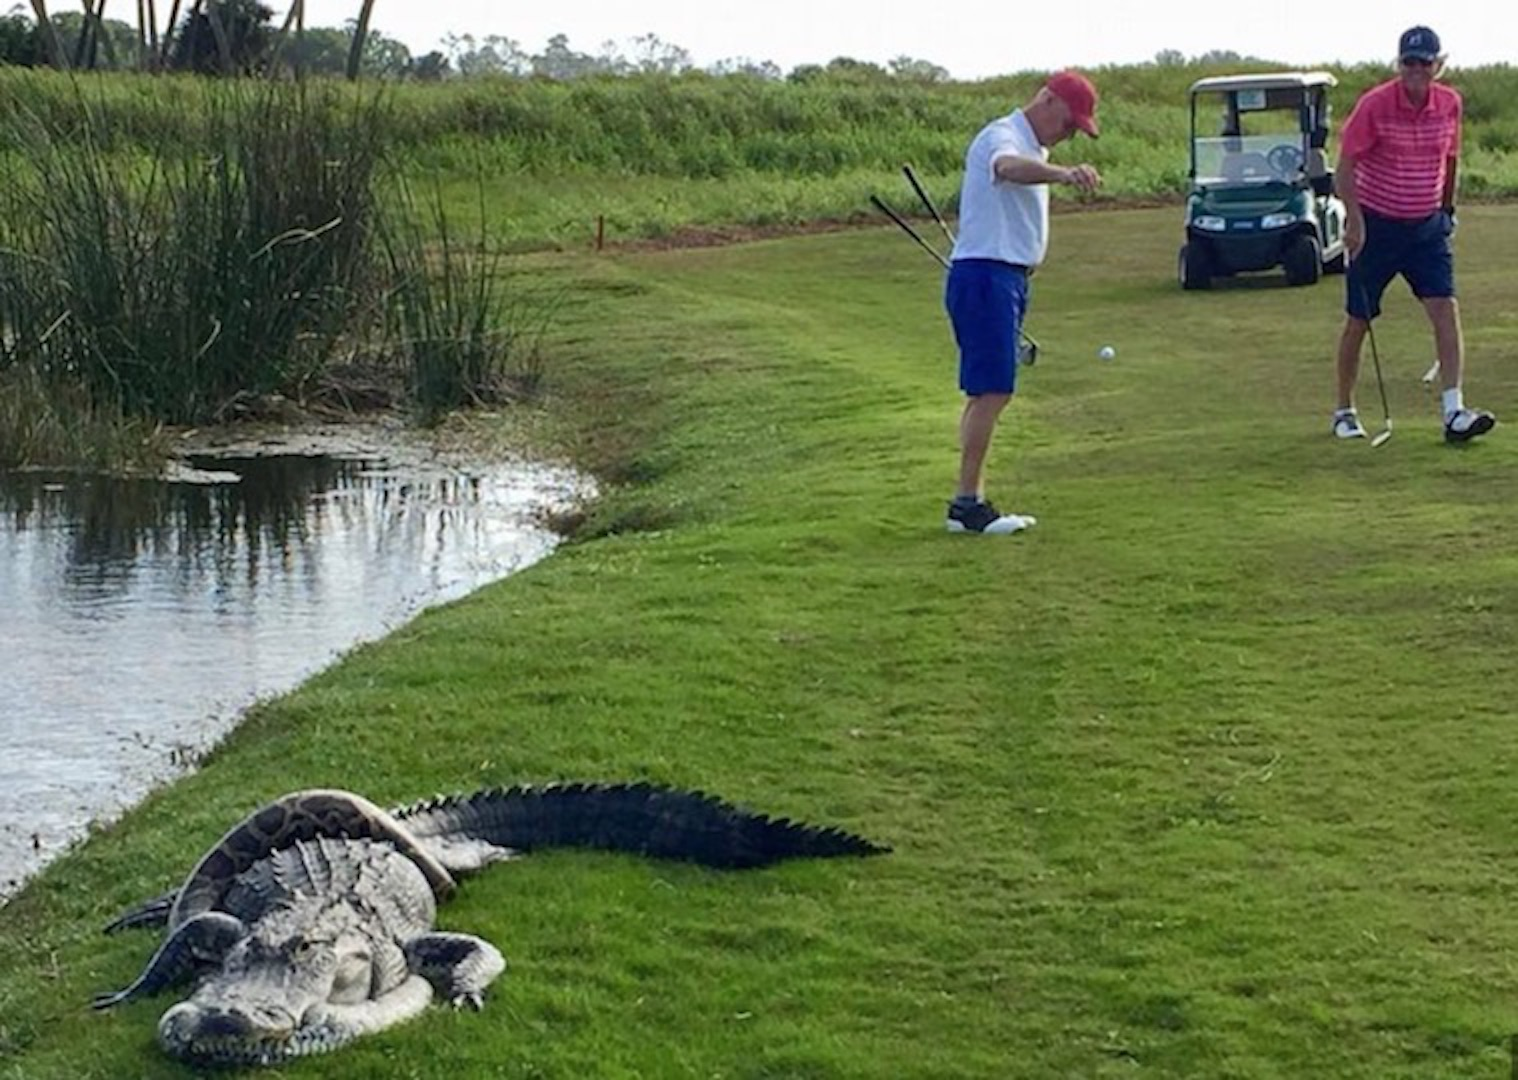 Alligator And Python Locked In Death Duel On Golf Course